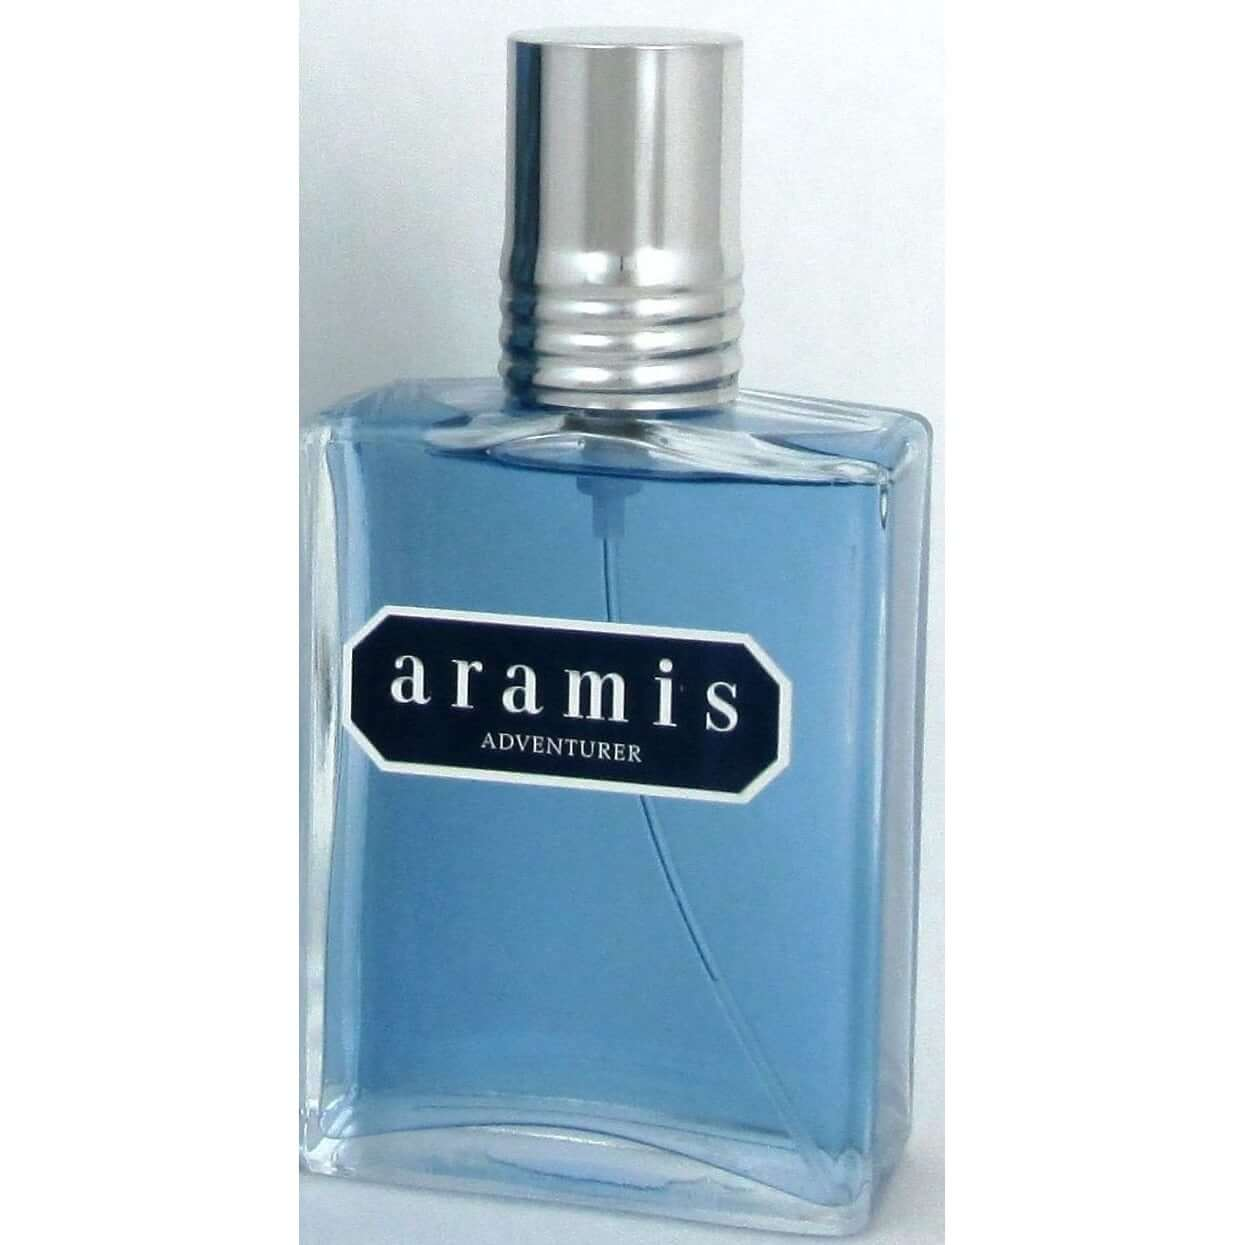 aramis-adventurer-for-men-cologne-spray-3-7-oz-new-tester